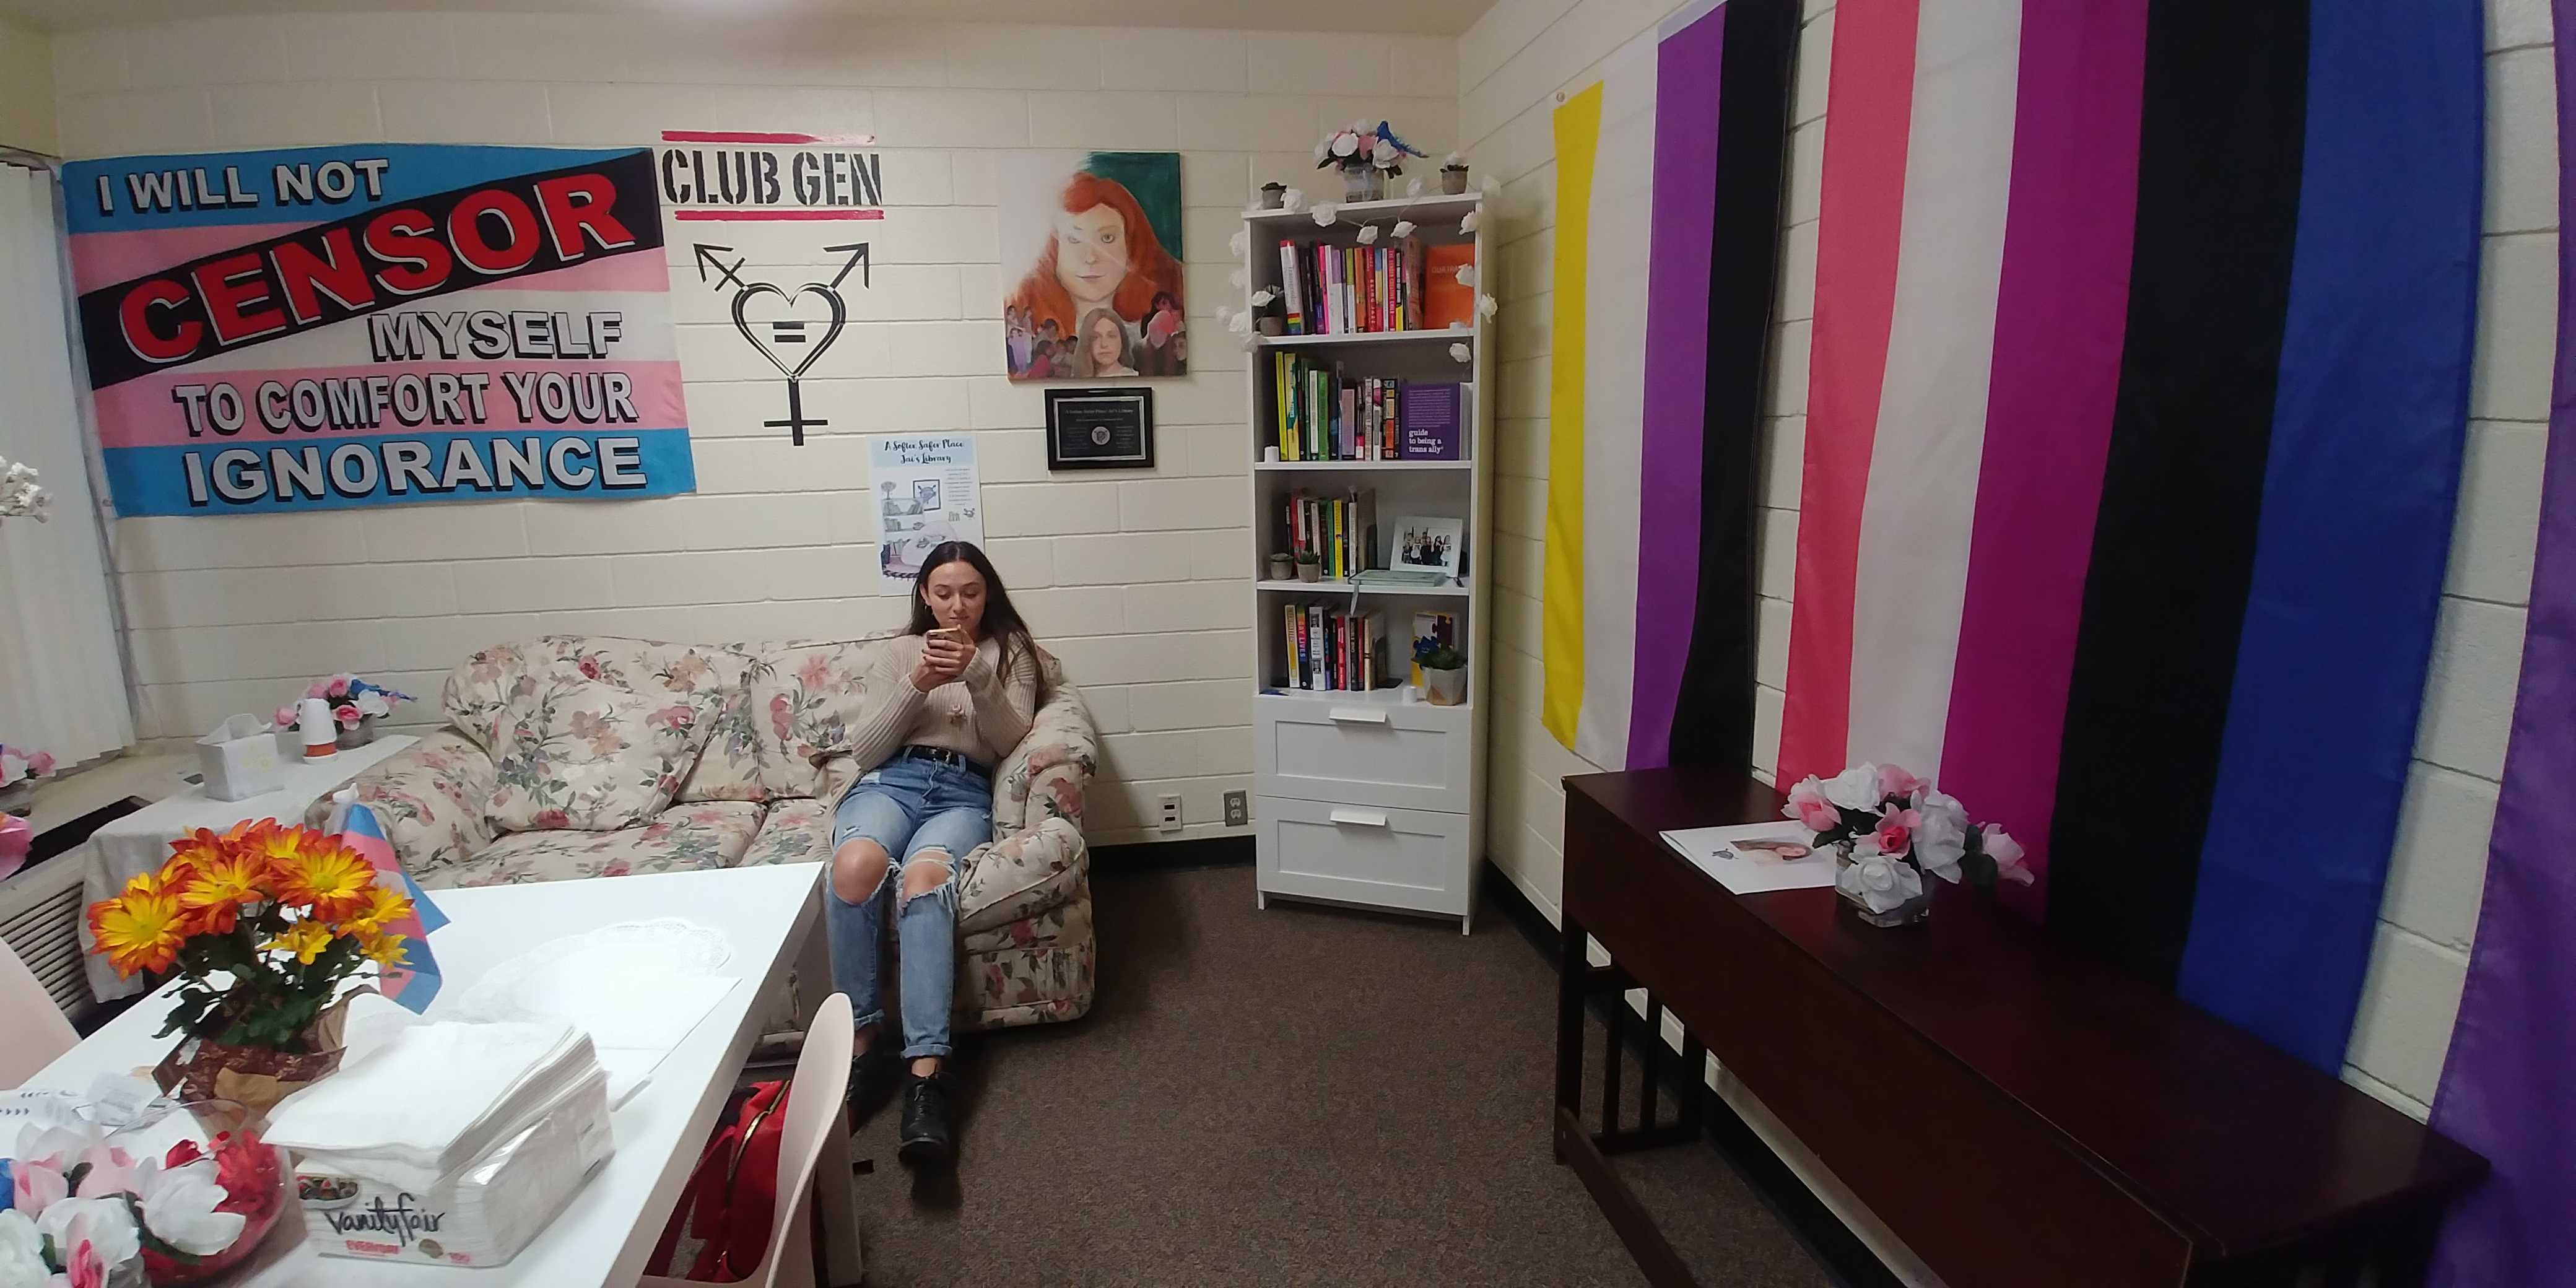 Andrea Gray, a member of Club GEN, hangs out in the Club GEN's room where Jai's library is located.